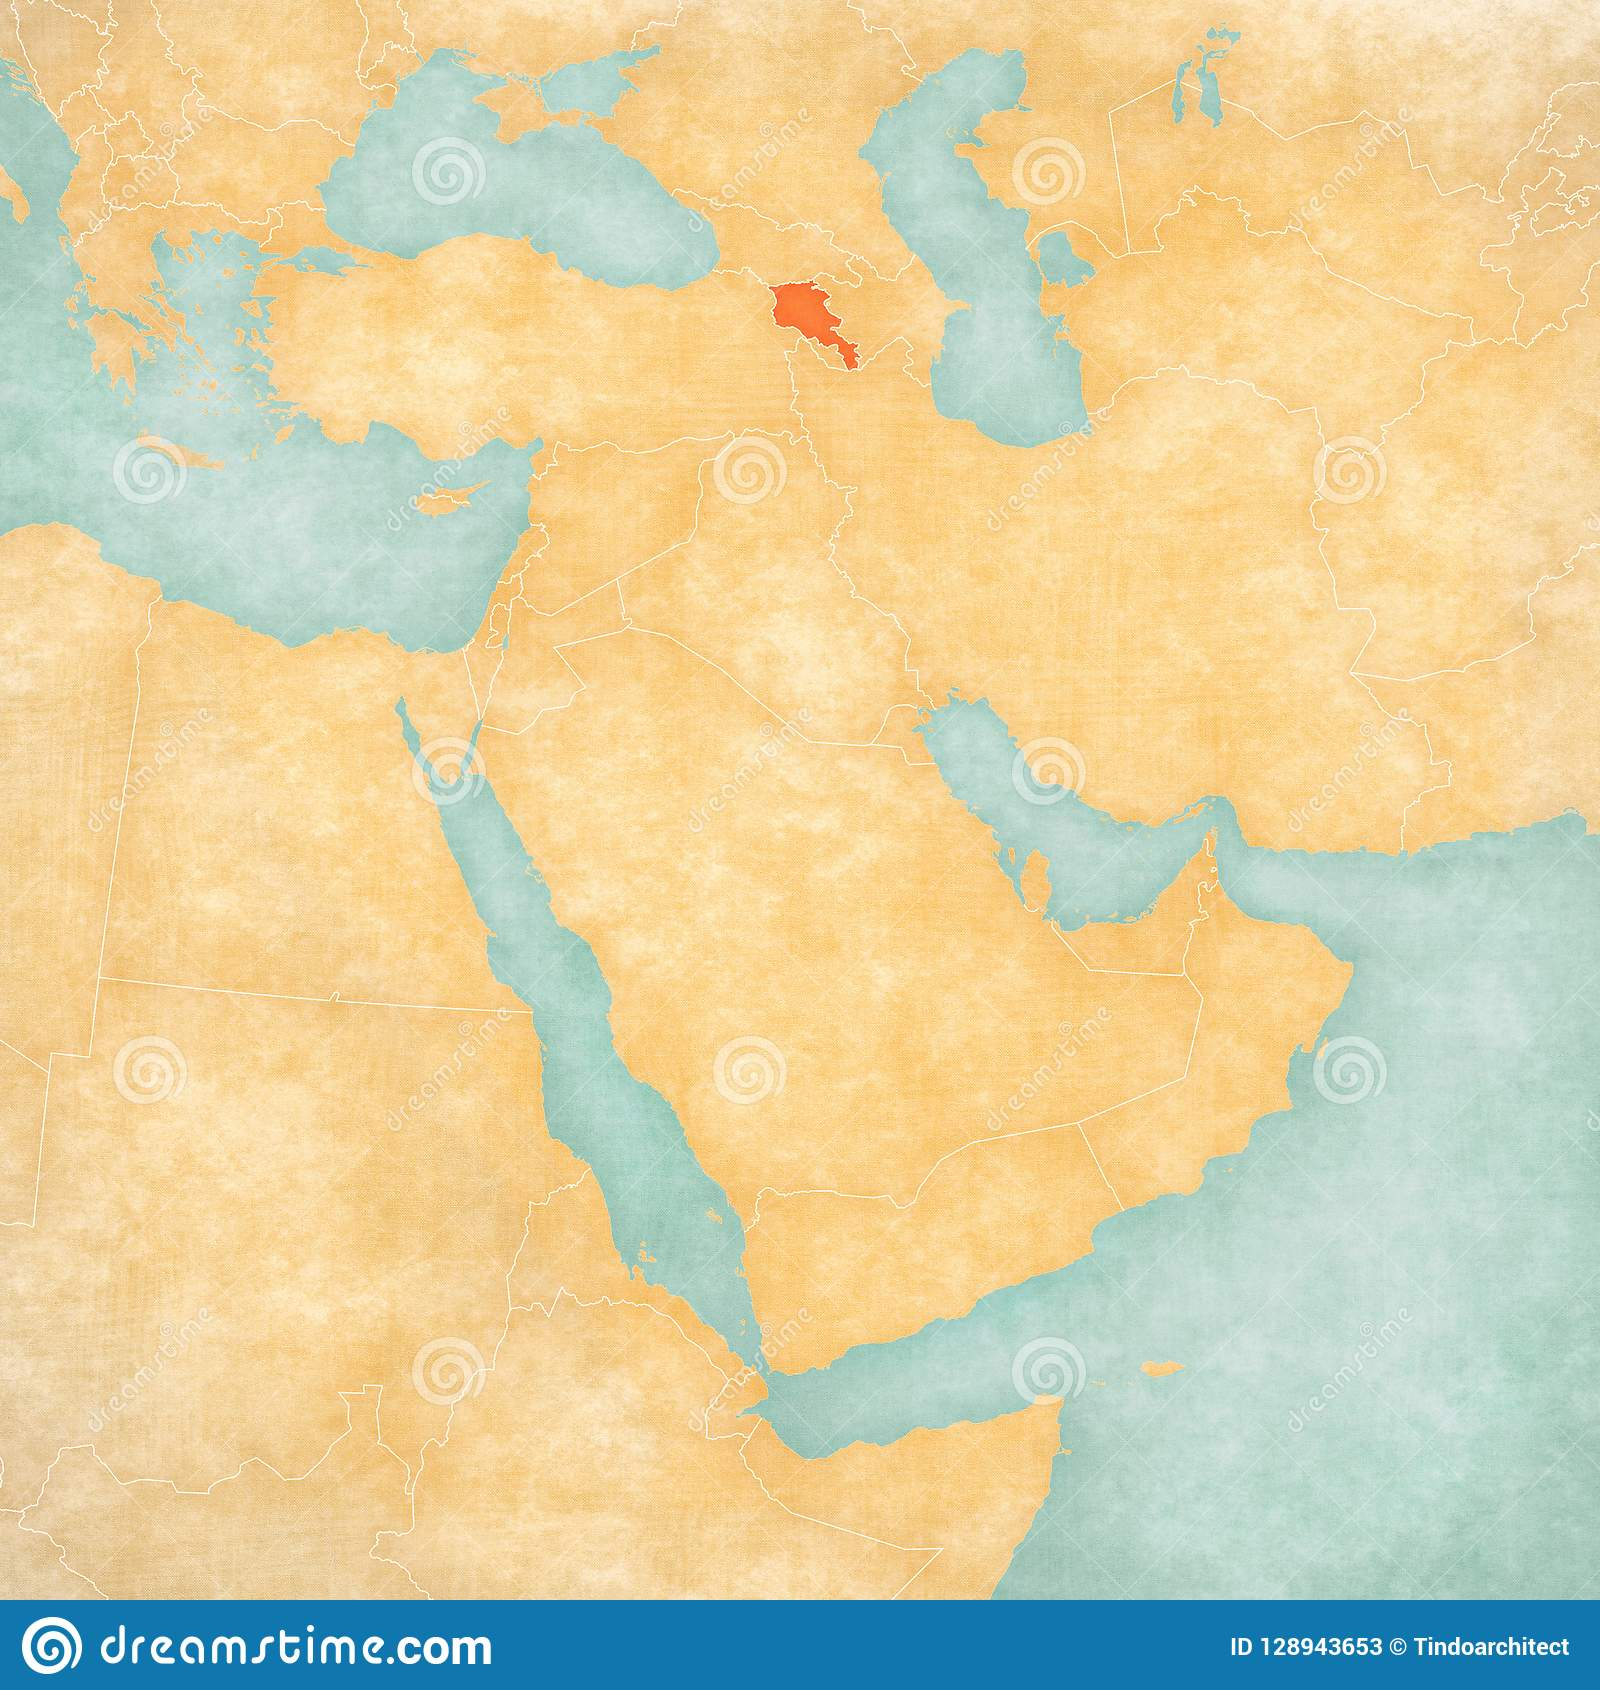 Map Of Middle East - Armenia Stock Illustration - Illustration of ...